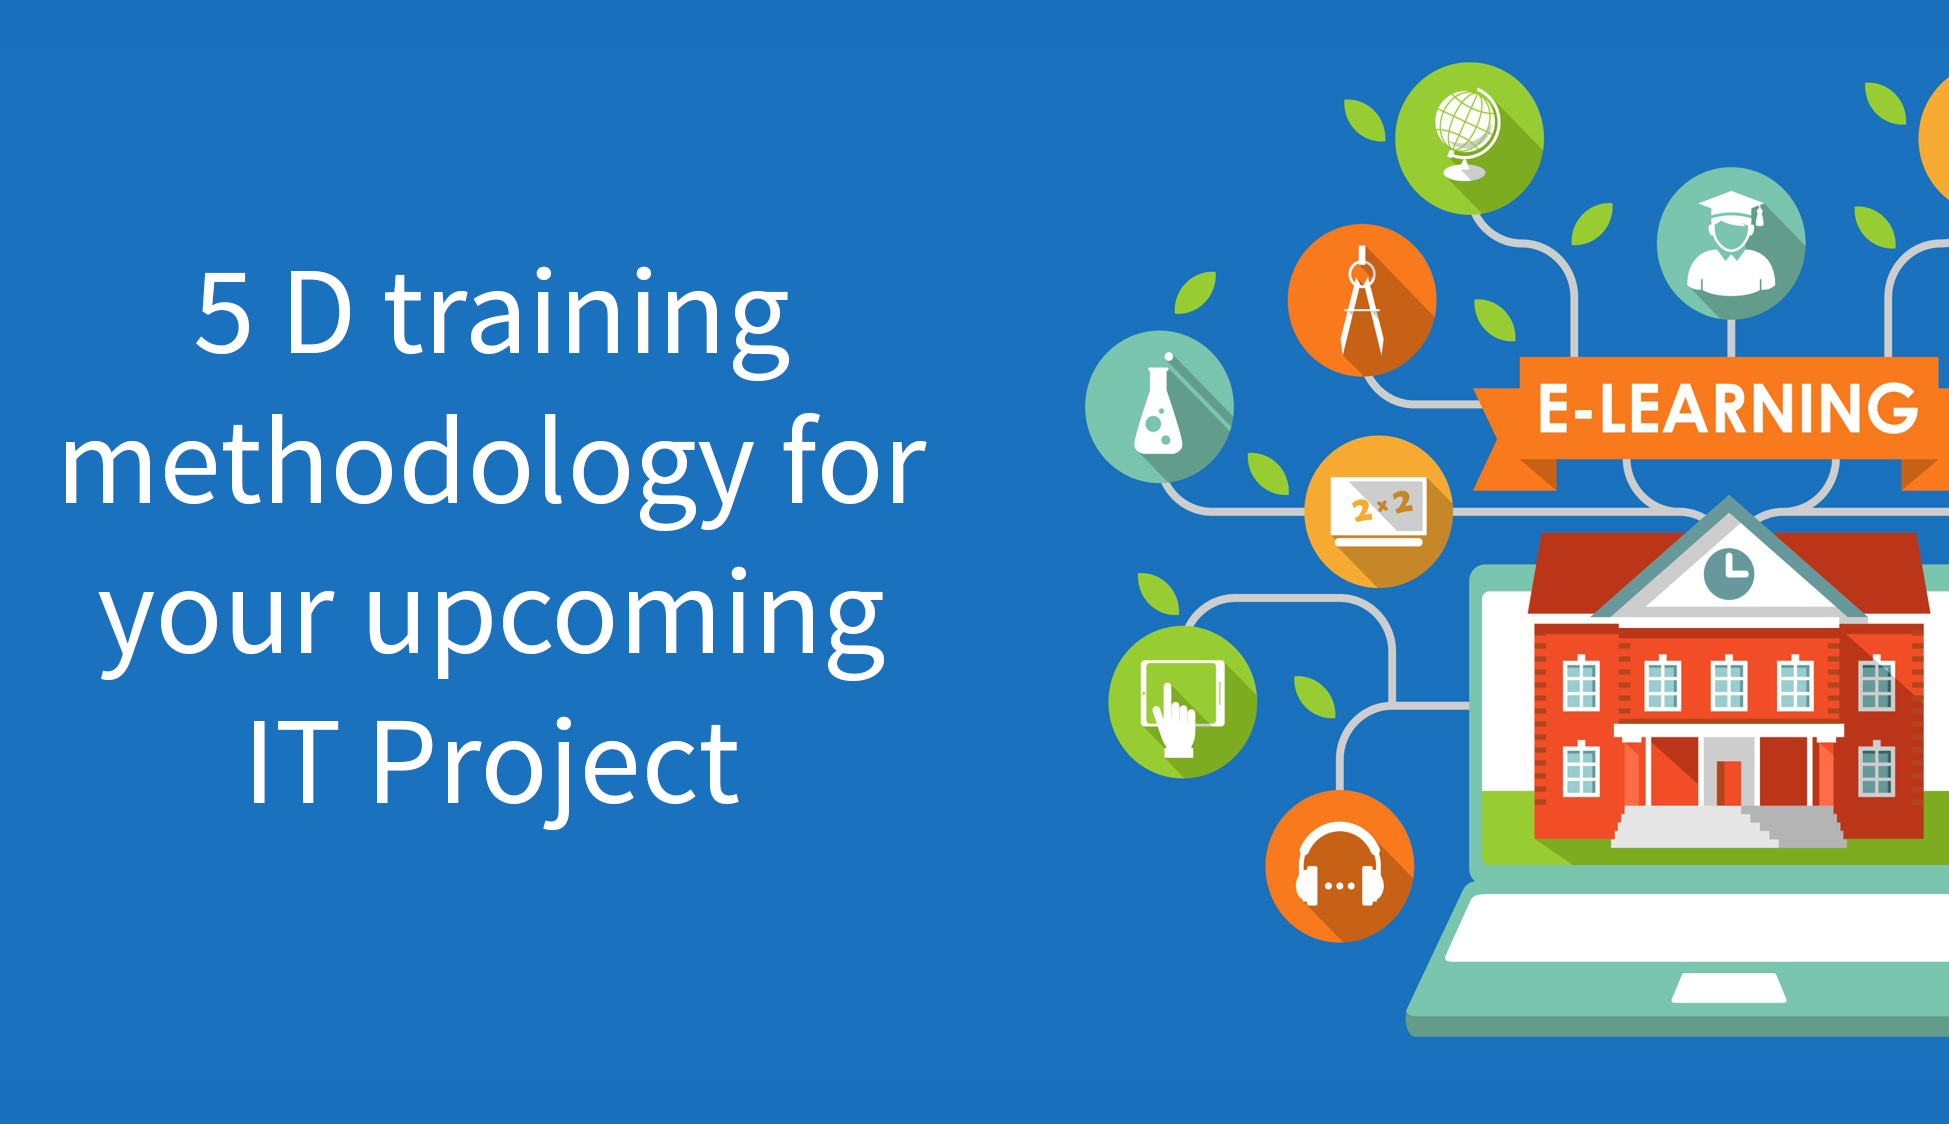 5D's training framework for your upcoming IT project